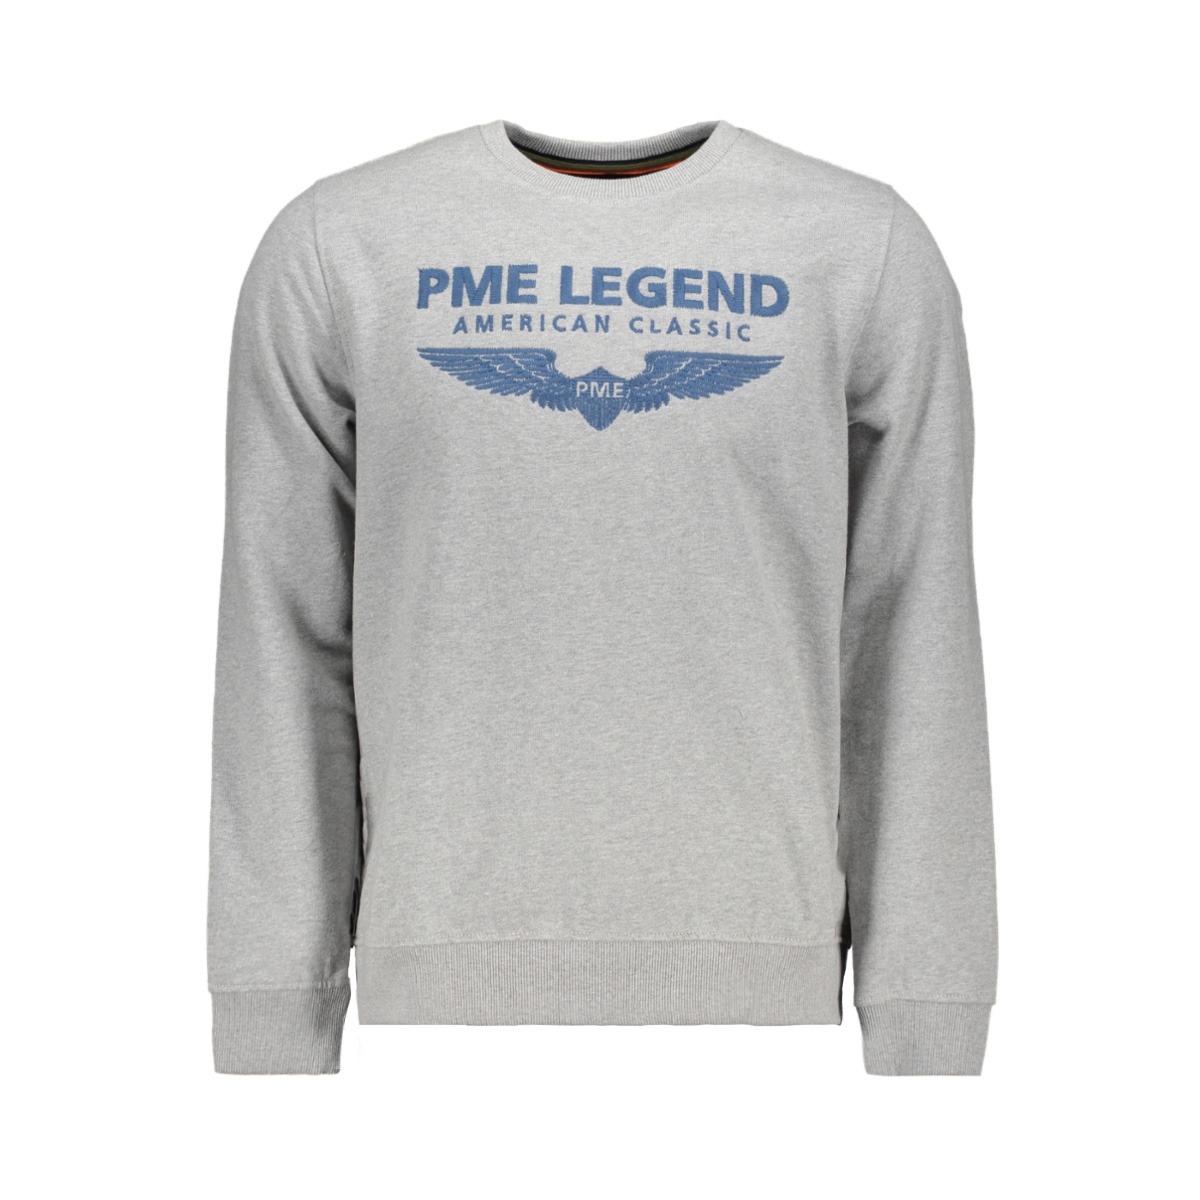 pull over sweat nevada terry psw195405 pme legend sweater 960